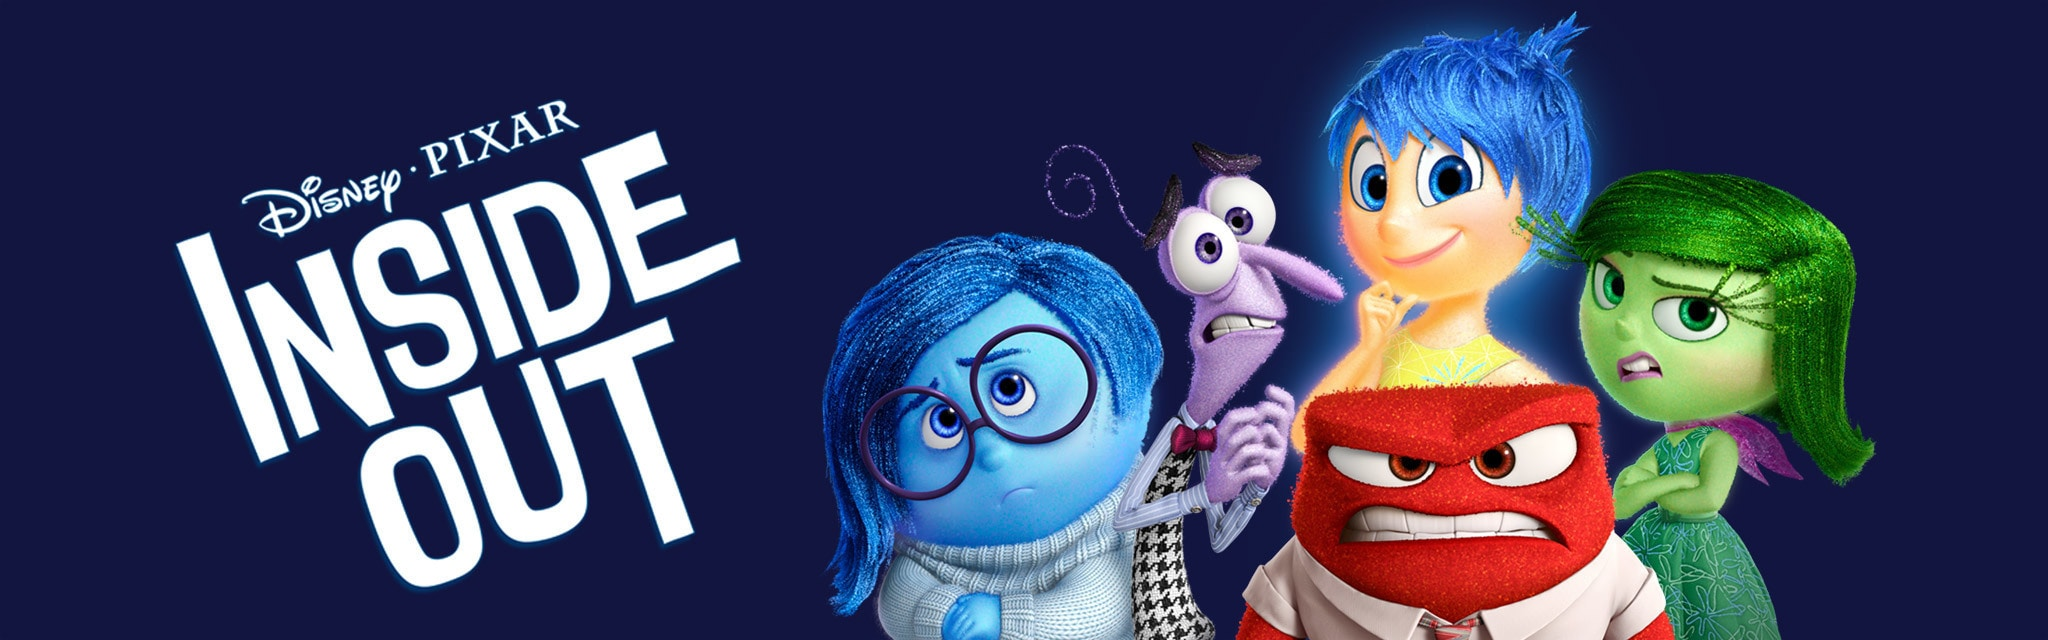 Inside Out - Characters Page - Hero - TH